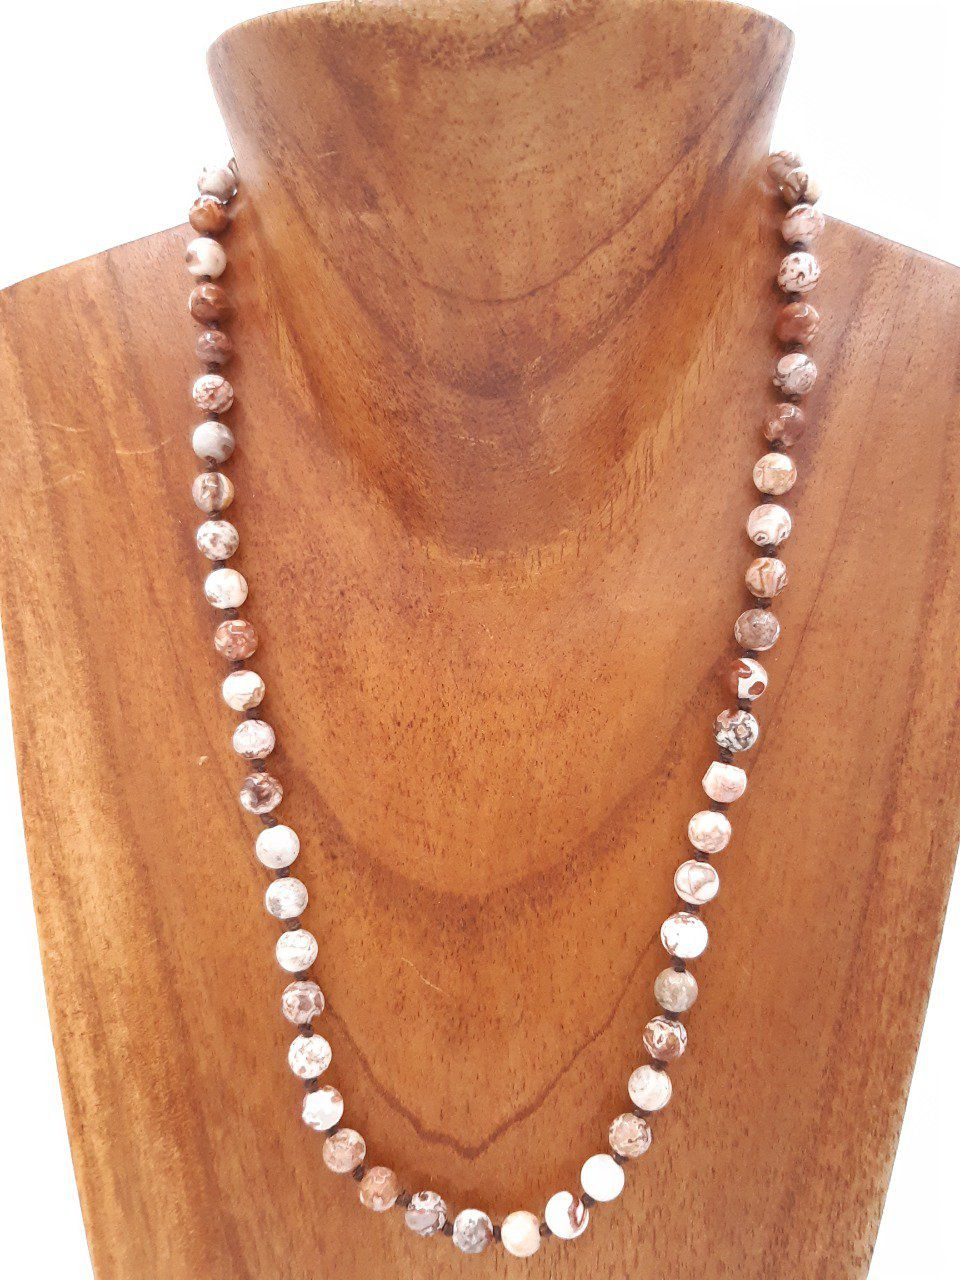 Collier en agate Crazy lace